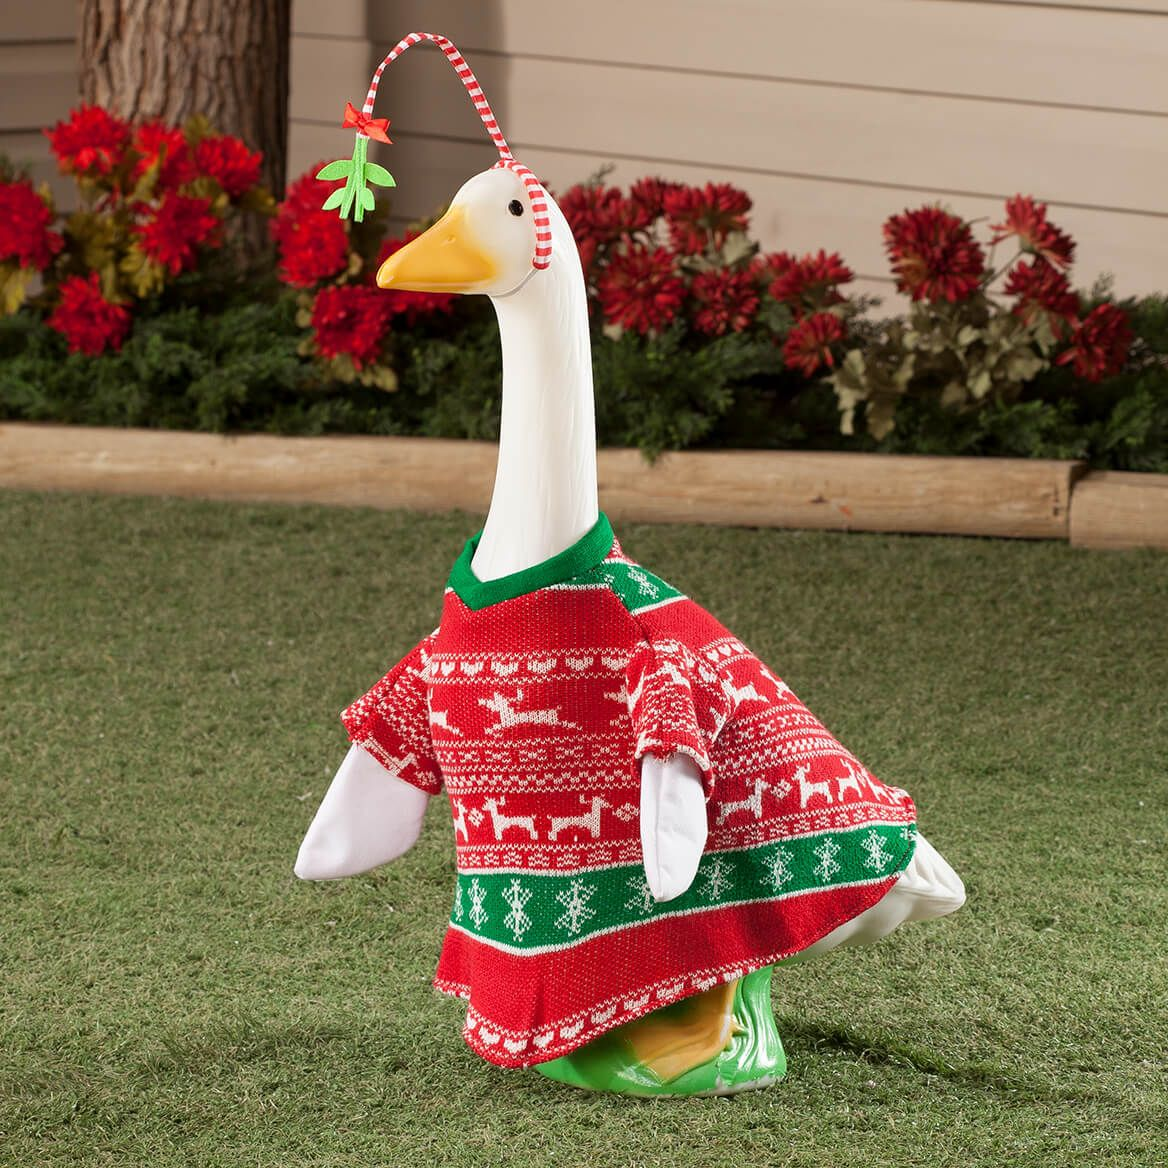 Red and Green Sweater Goose Outfit with Mistletoe-363611